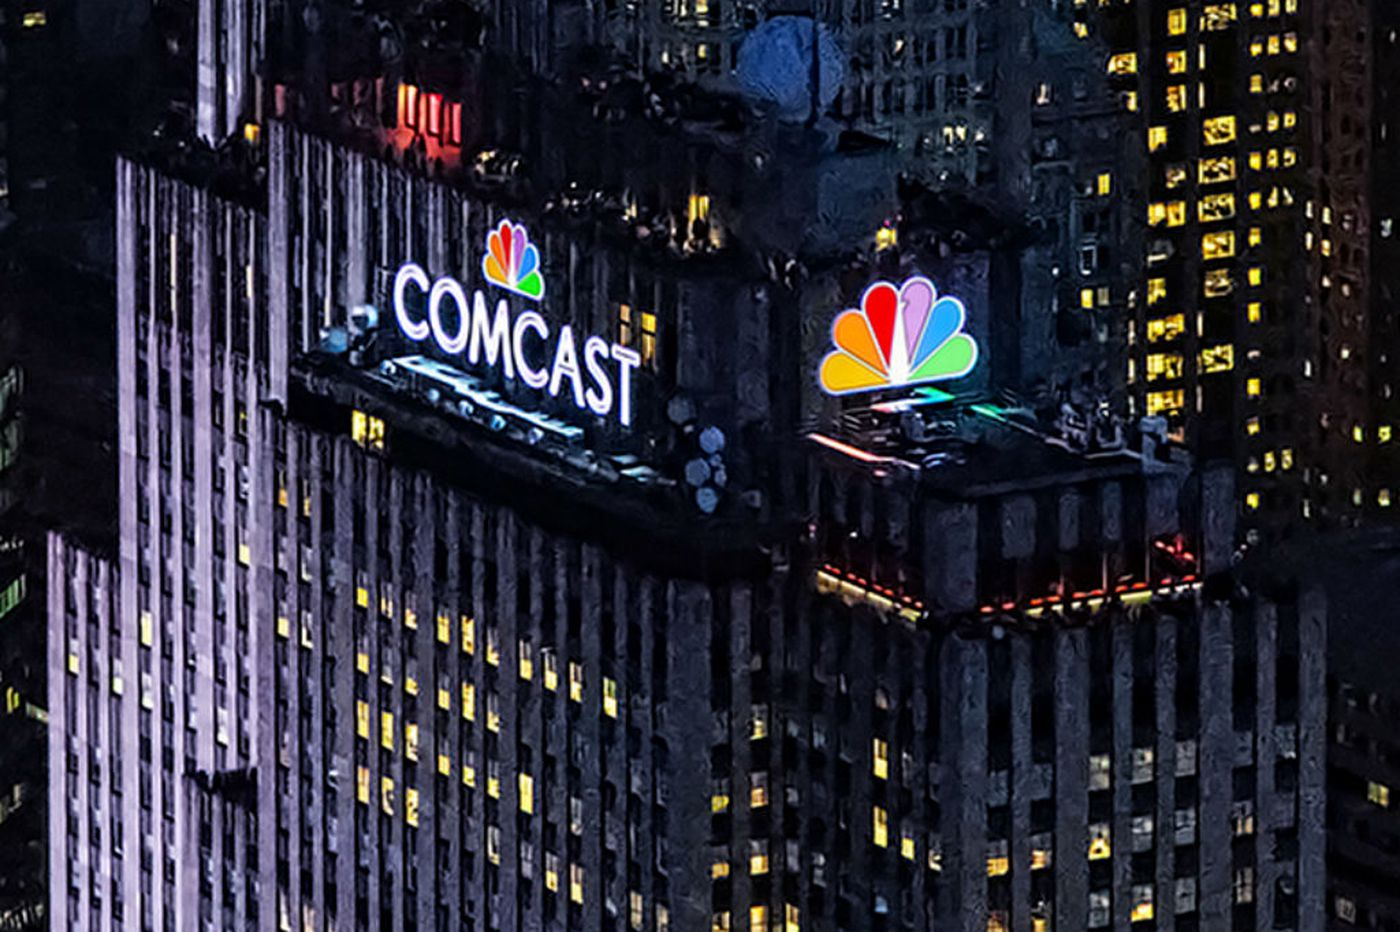 Comcast's head of NBCUniversal, Steve Burke, set to leave his post in August